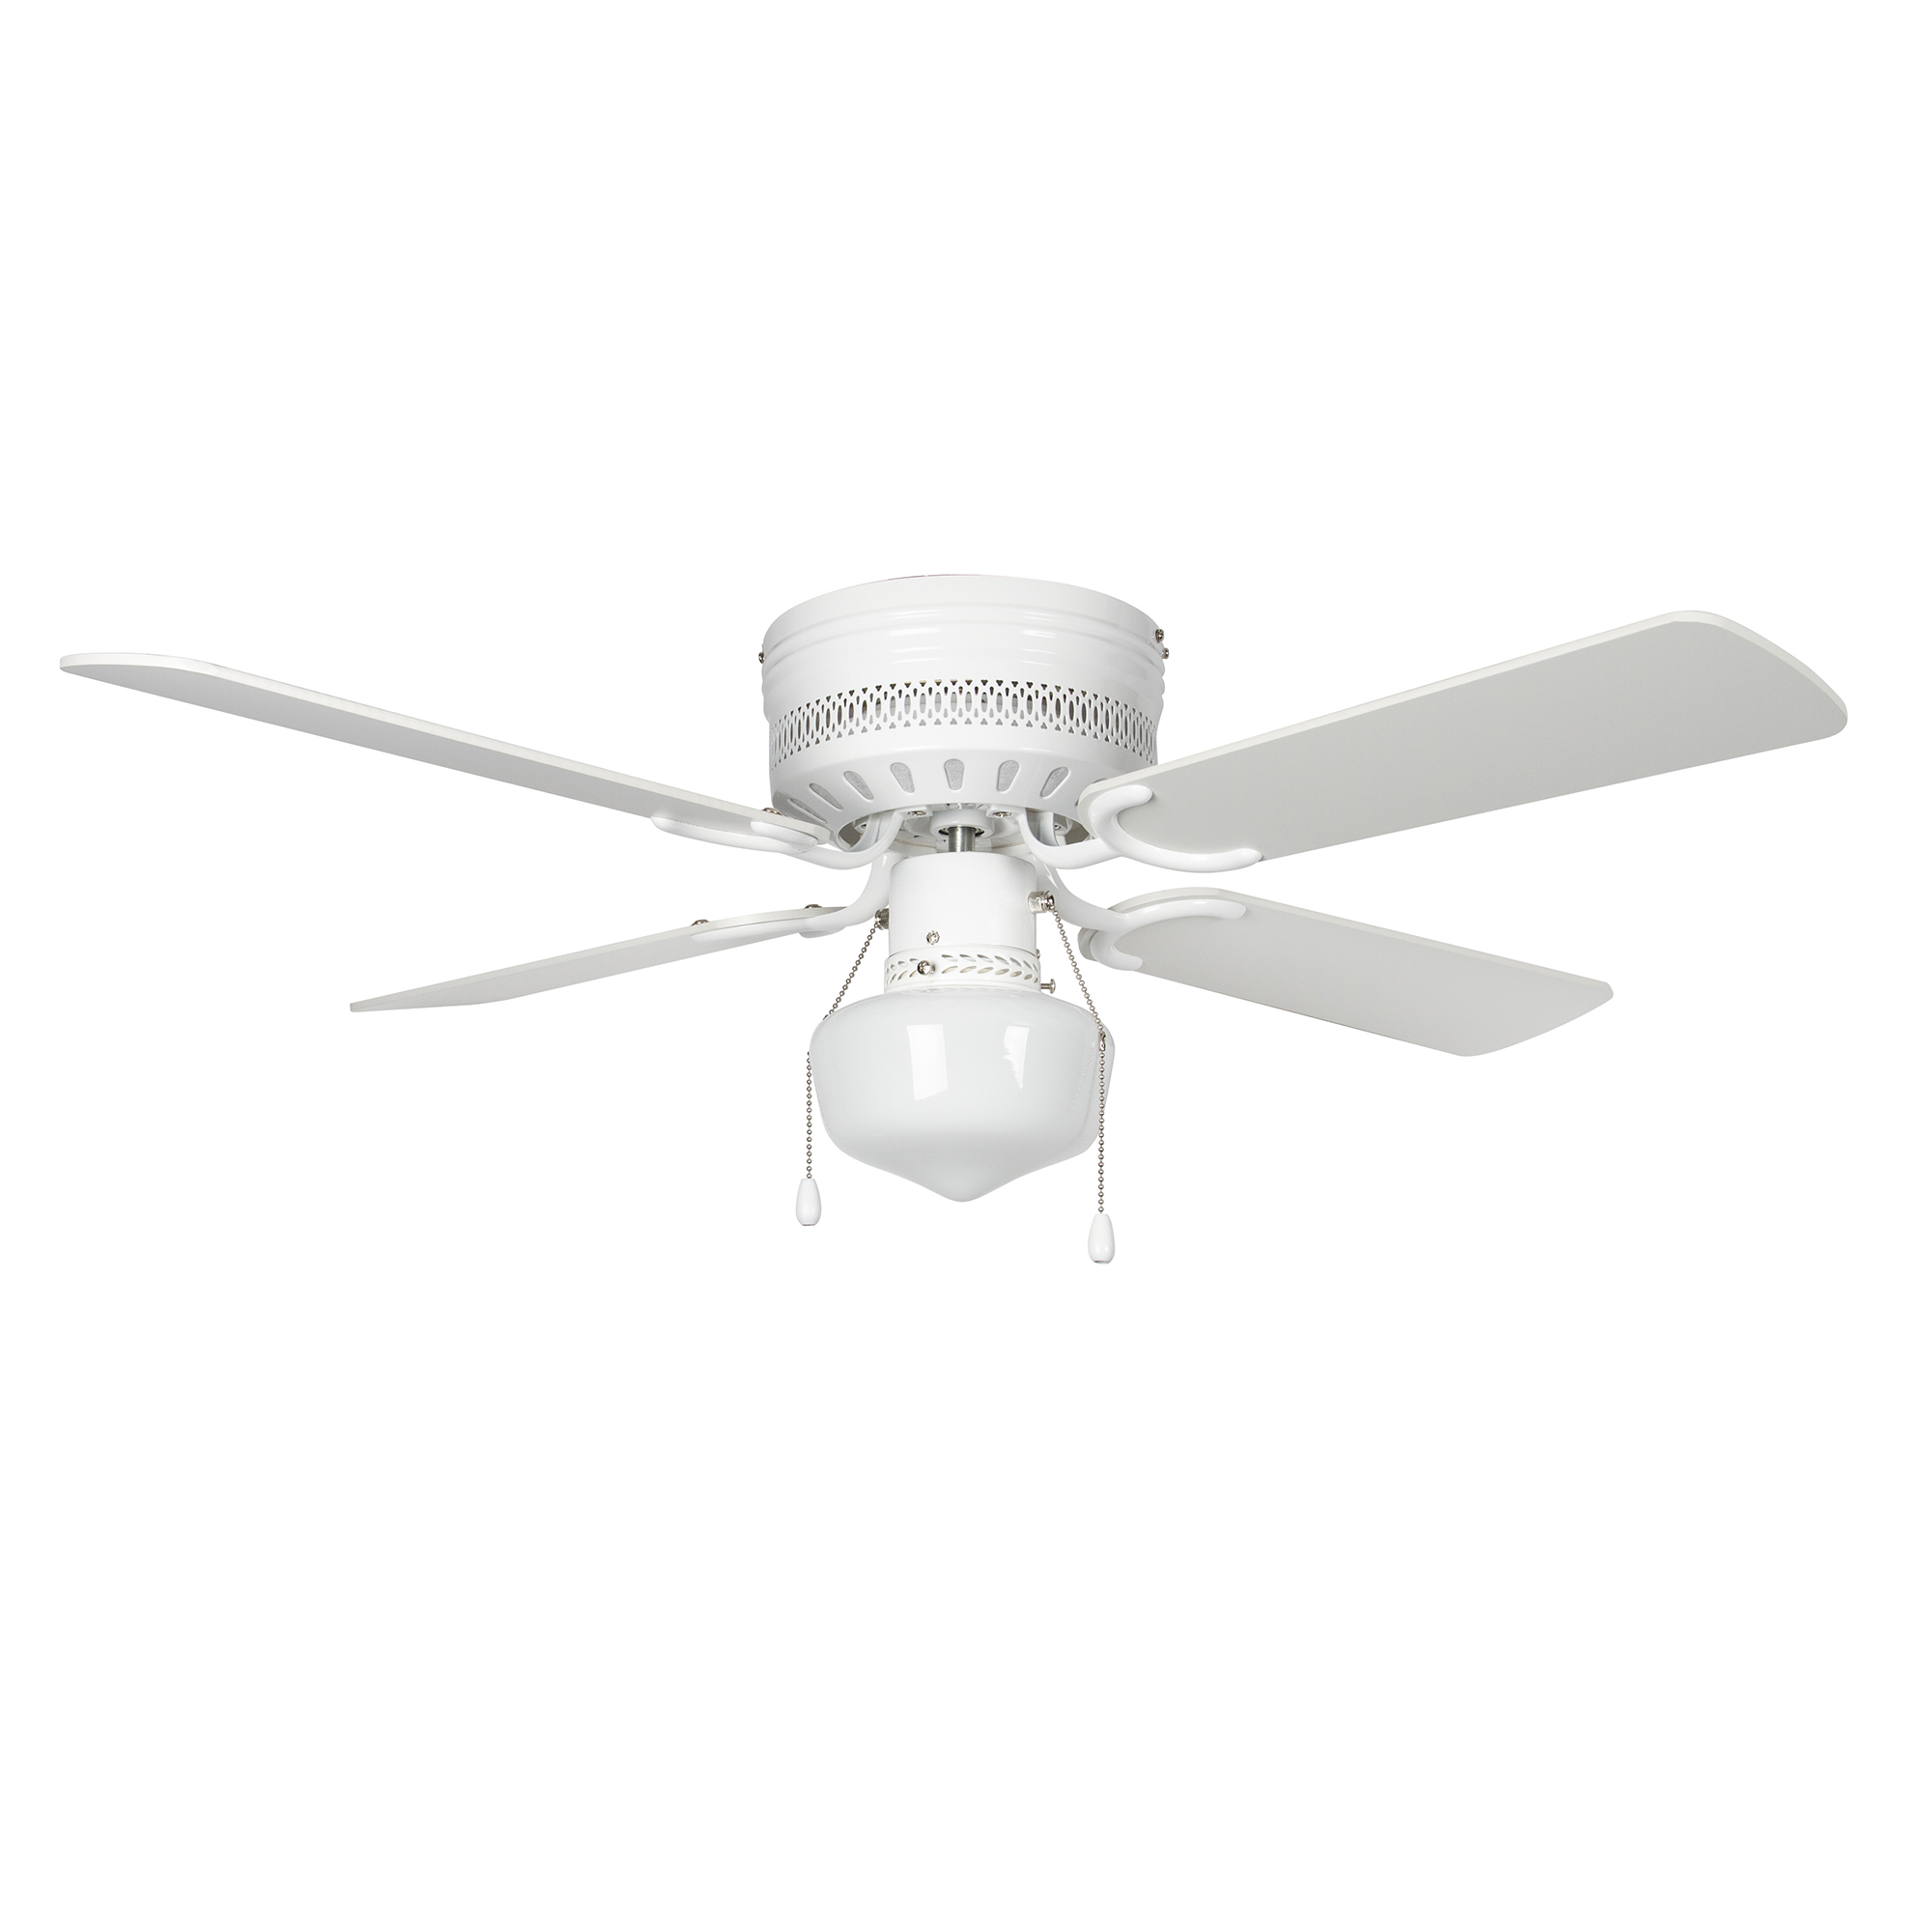 Concord 42hug4wh Yg6 Mb Led Hugger 42 Inch White With White Natural Oak Blades Indoor Ceiling Fan